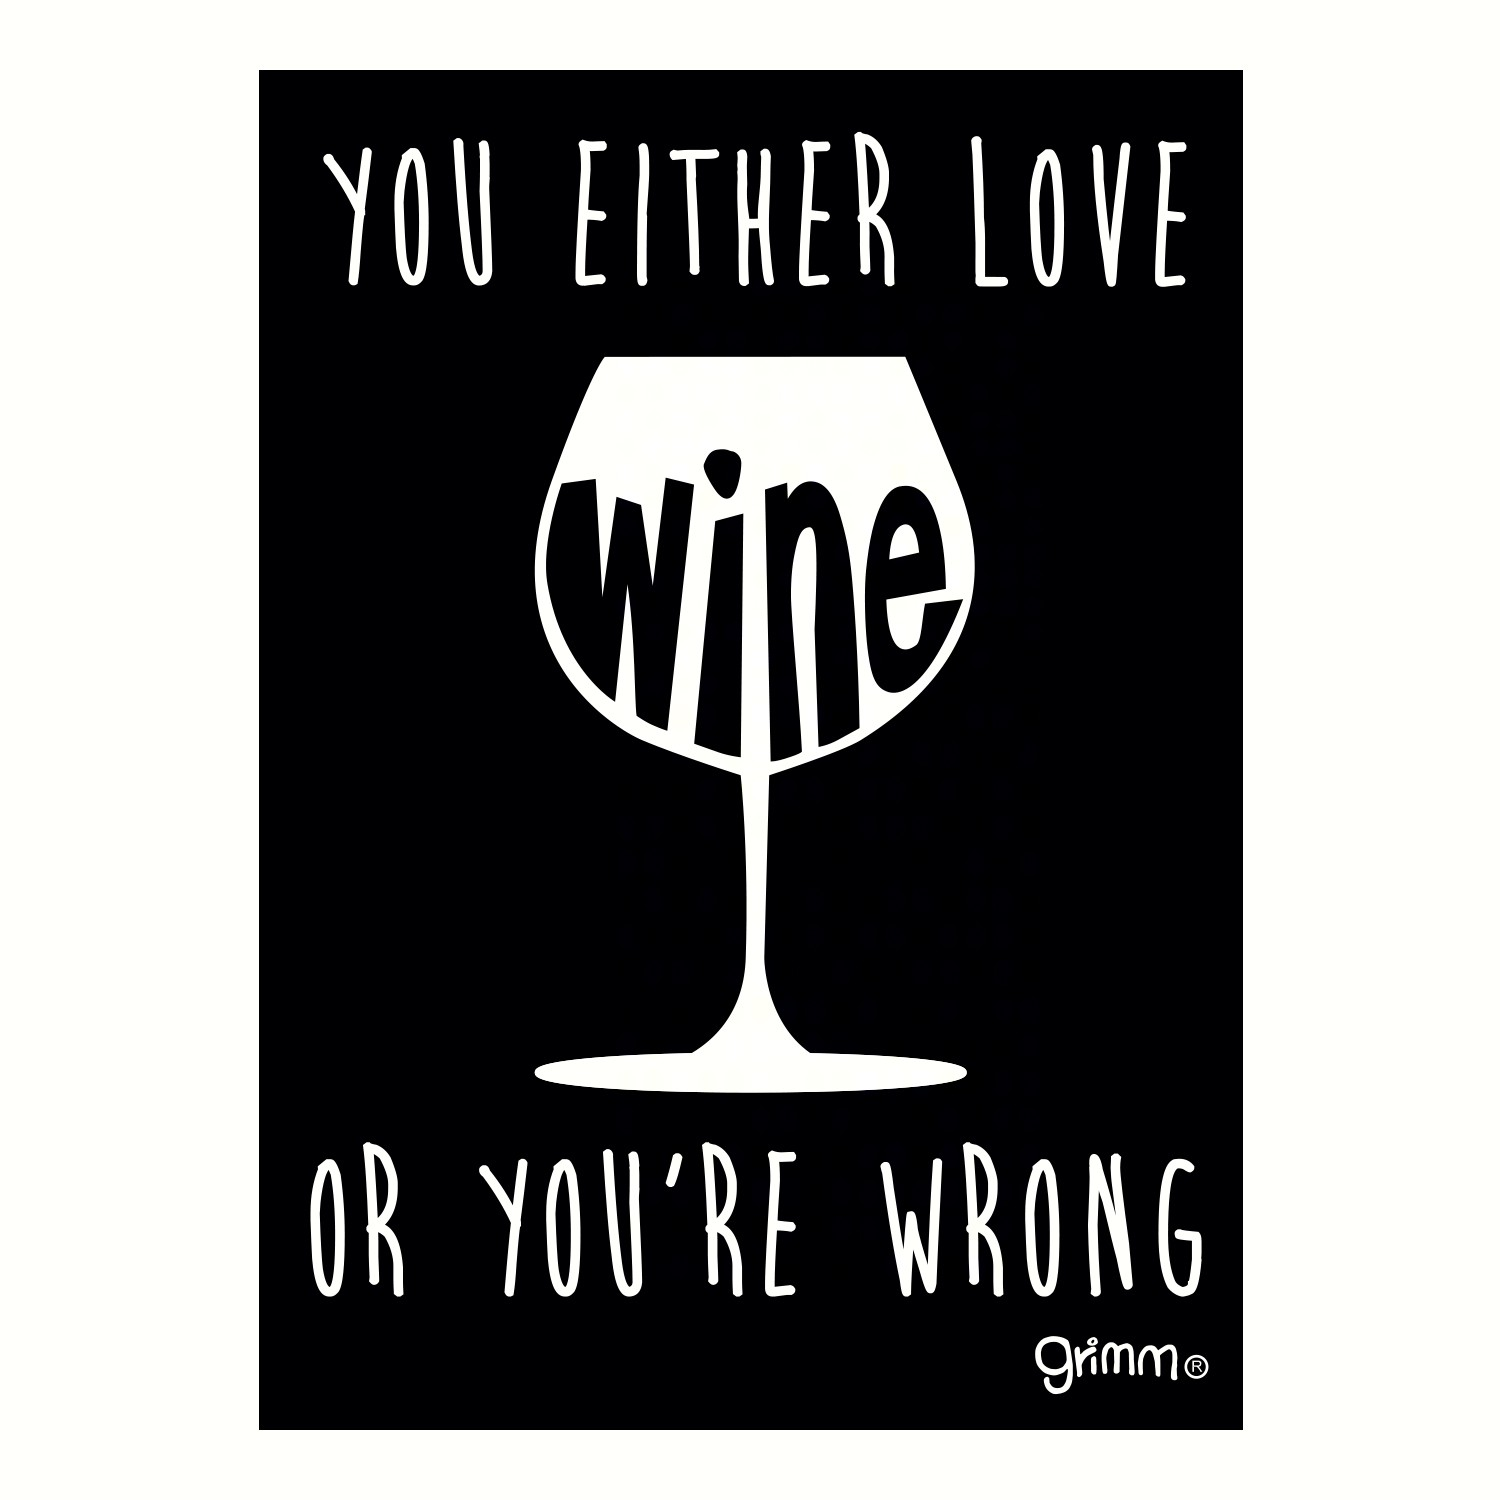 Magnet, Humorous Saying, You either love wine or you're wrong